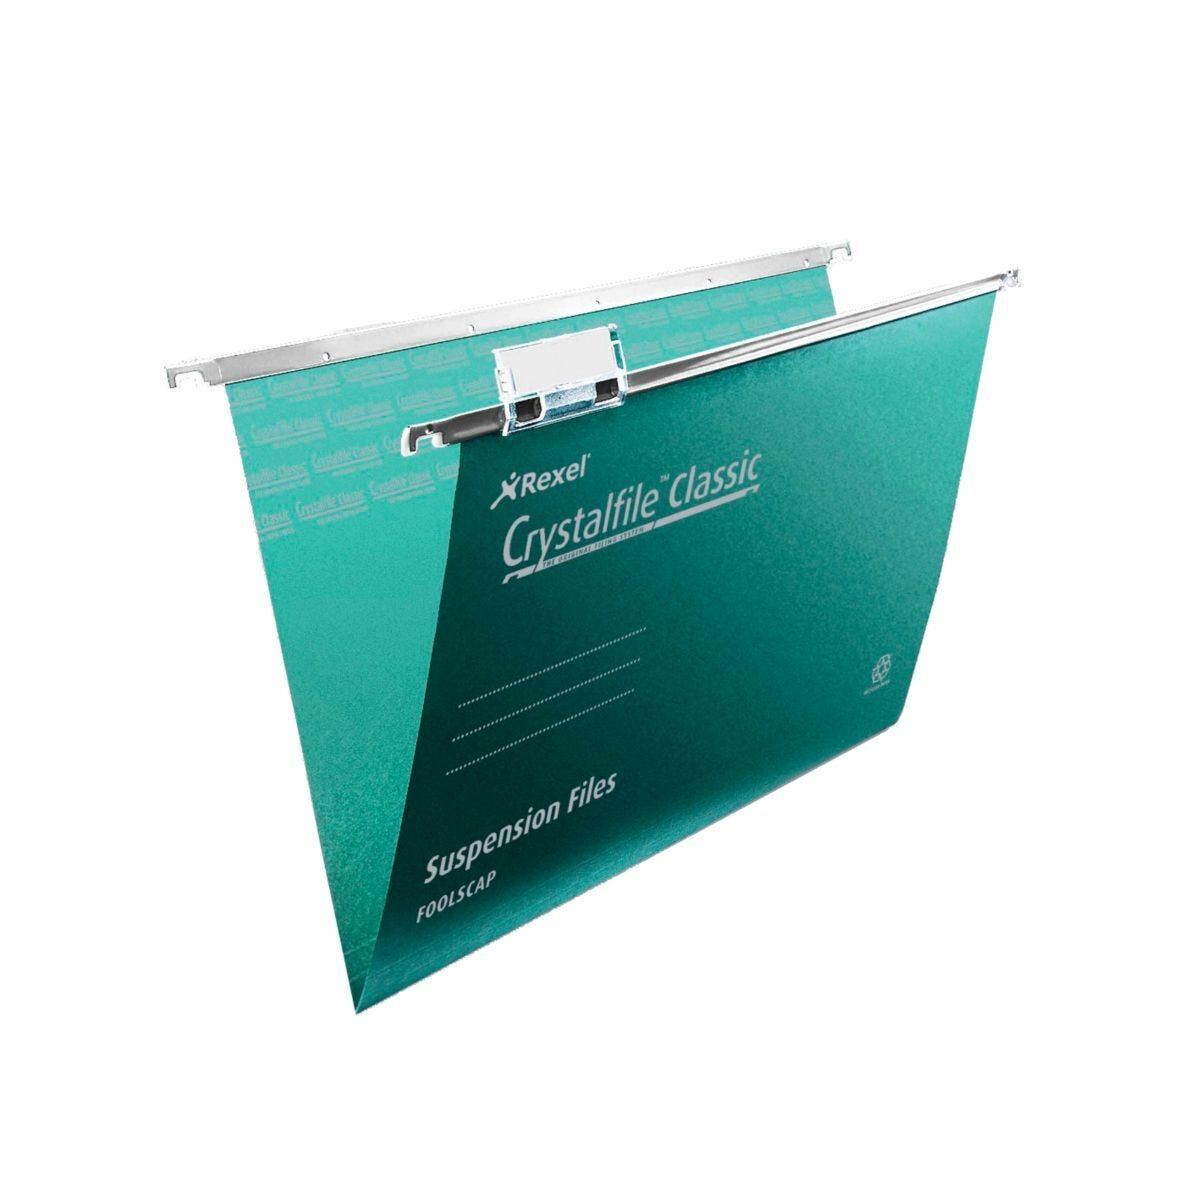 Rexel Crystalfile Classic Foolscap Suspension File 15mm Pack of 50 Green